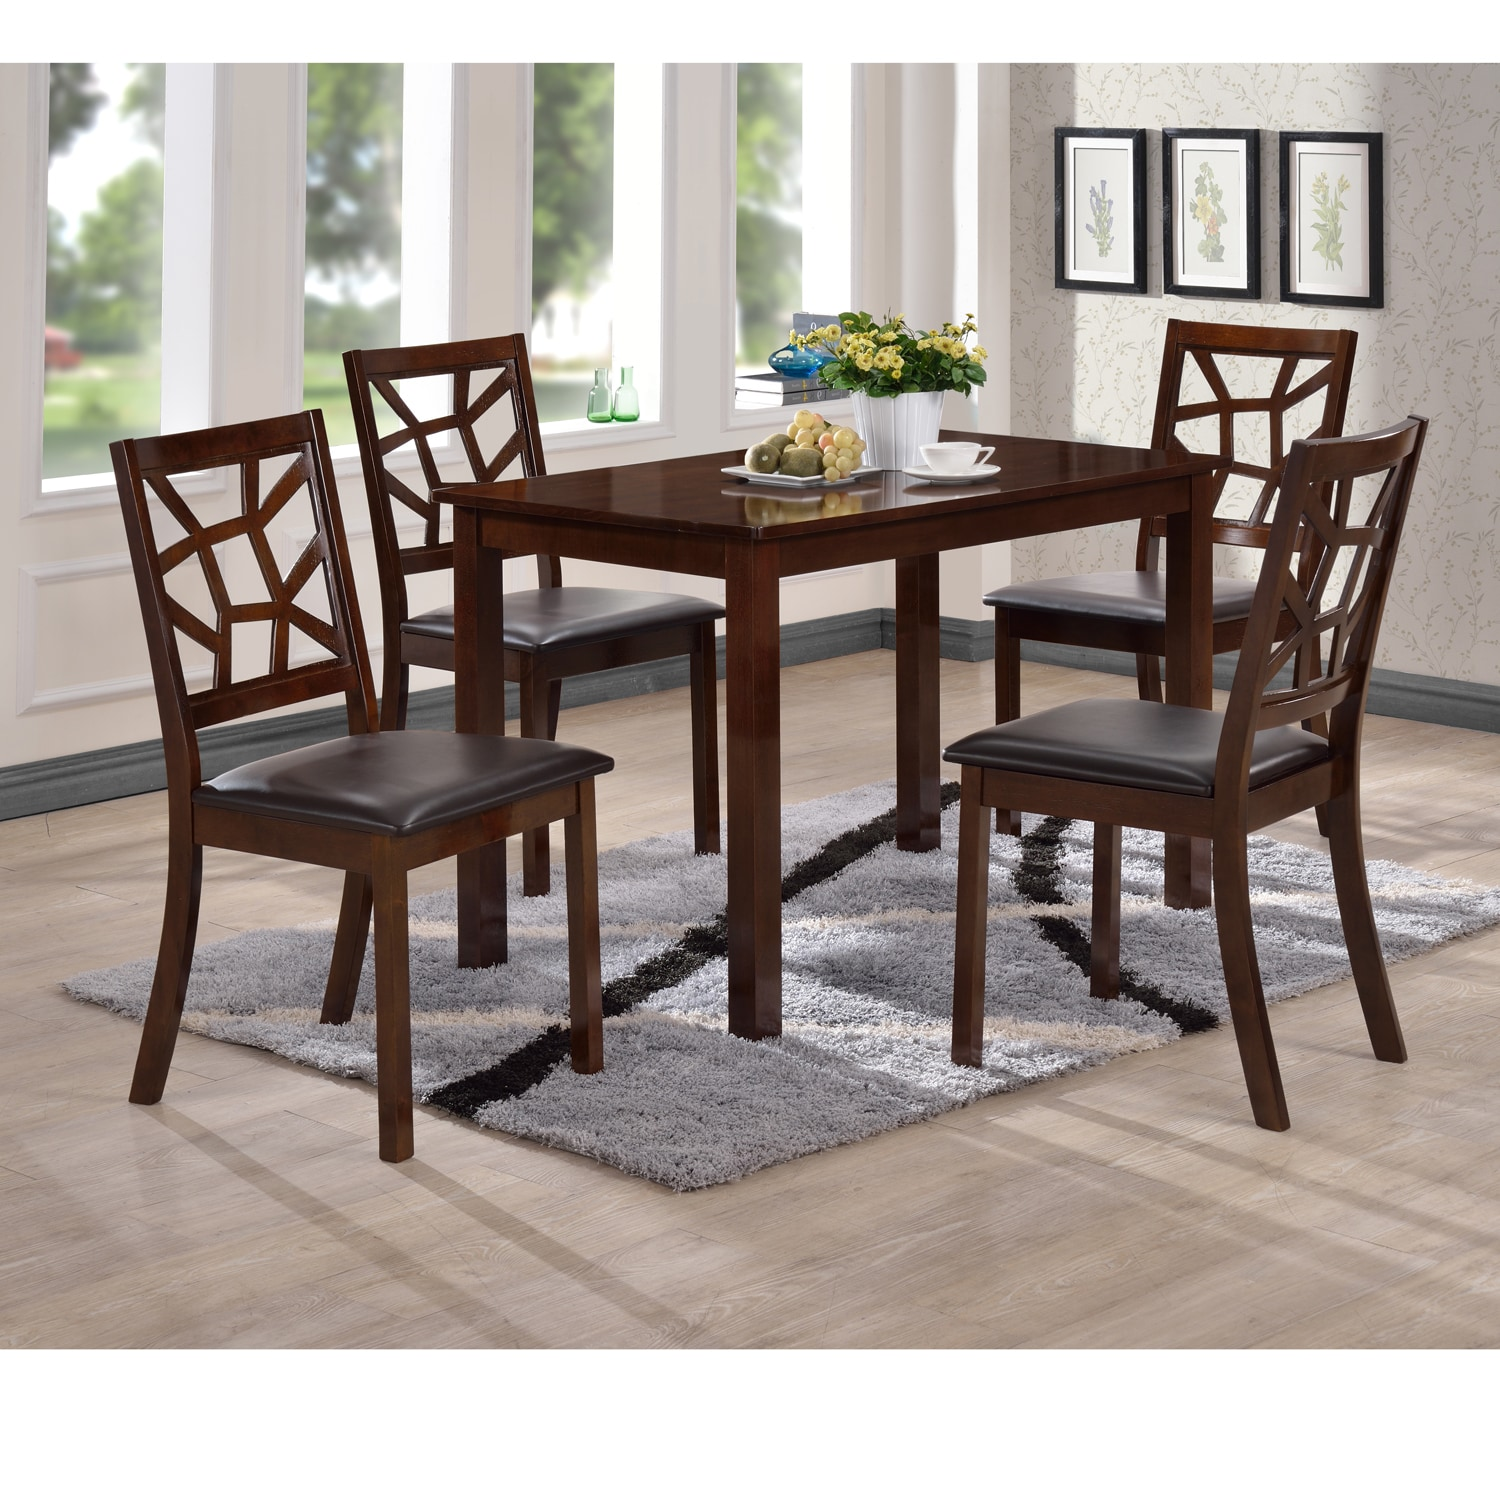 Contemporary Black Faux Leather Dining Chair 2 Piece Set By Baxton Studio On Free Shipping Today 9791468